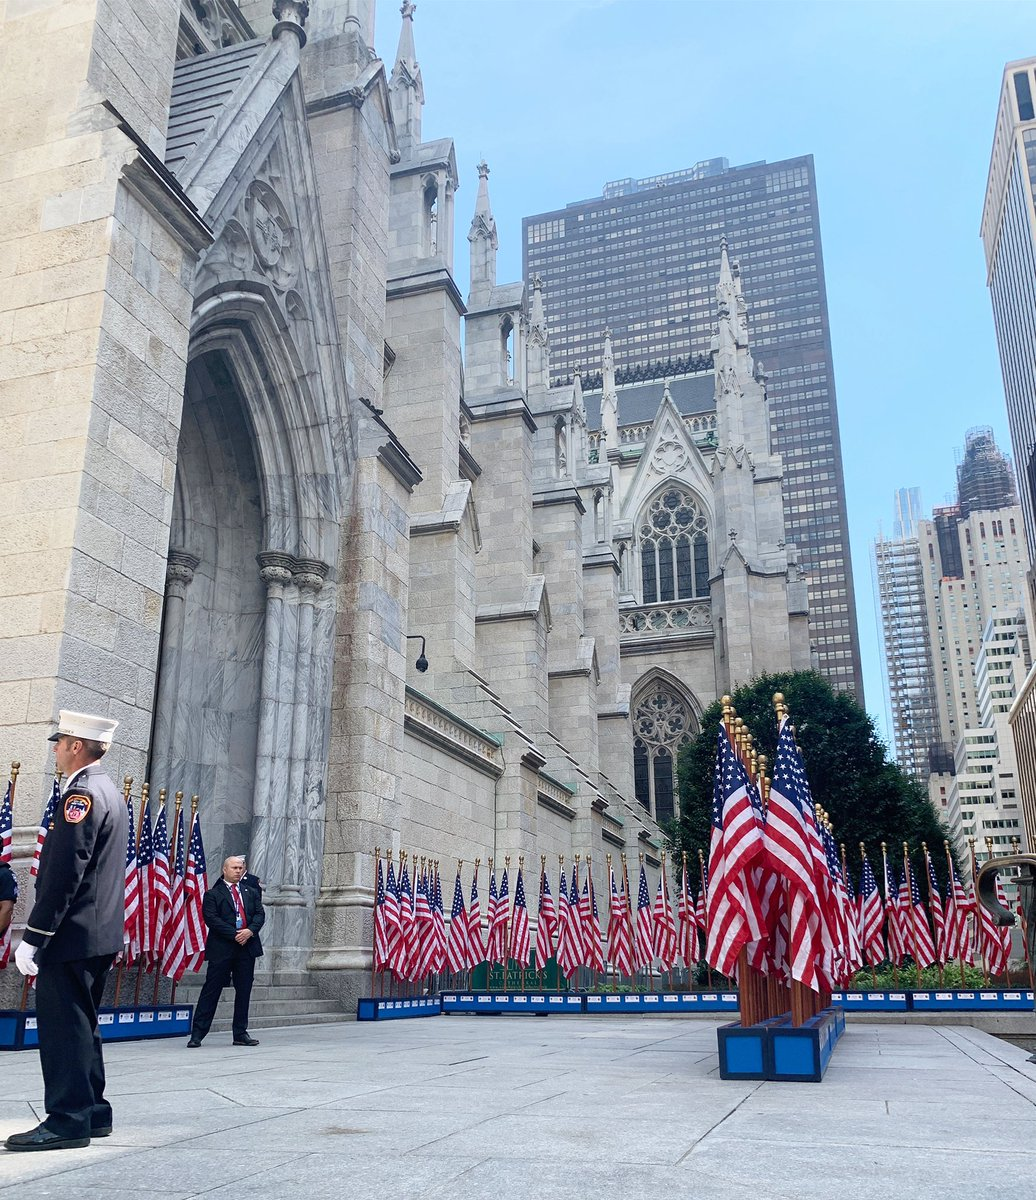 This was the beautiful display in front of St. Patrick's Cathedral today in midtown. I was in New York 20 years ago and remember feeling scared and helpless. That's not the feeing today. The people here rebuilt and recovered, but they will never forget. I love you, New York. ❤️ https://t.co/wUj9Ey9Vv2